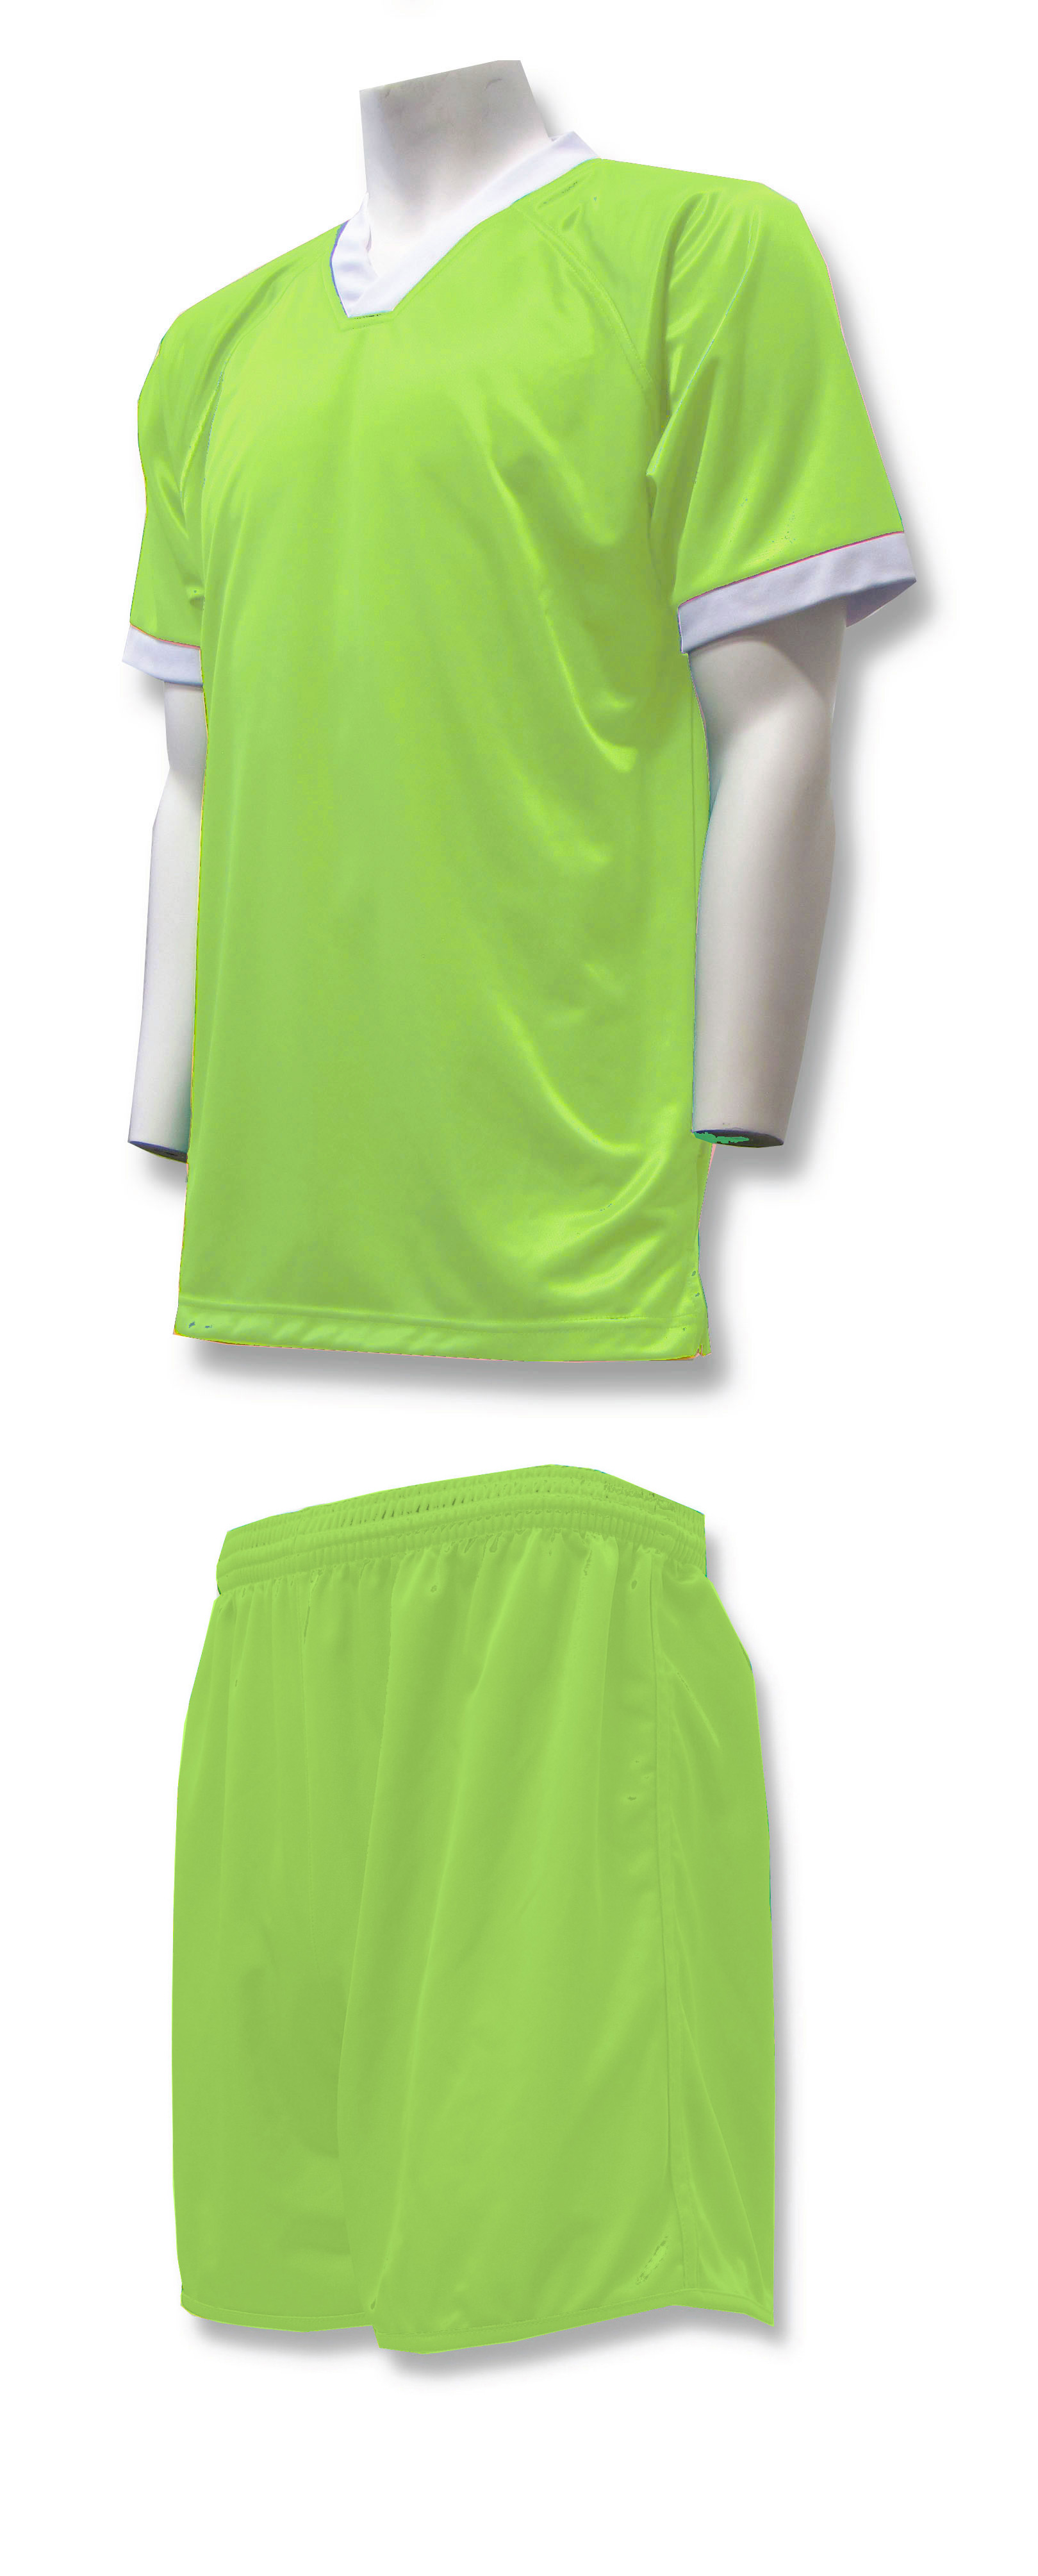 Forza soccer uniform kit in lime by Code Four Athletics